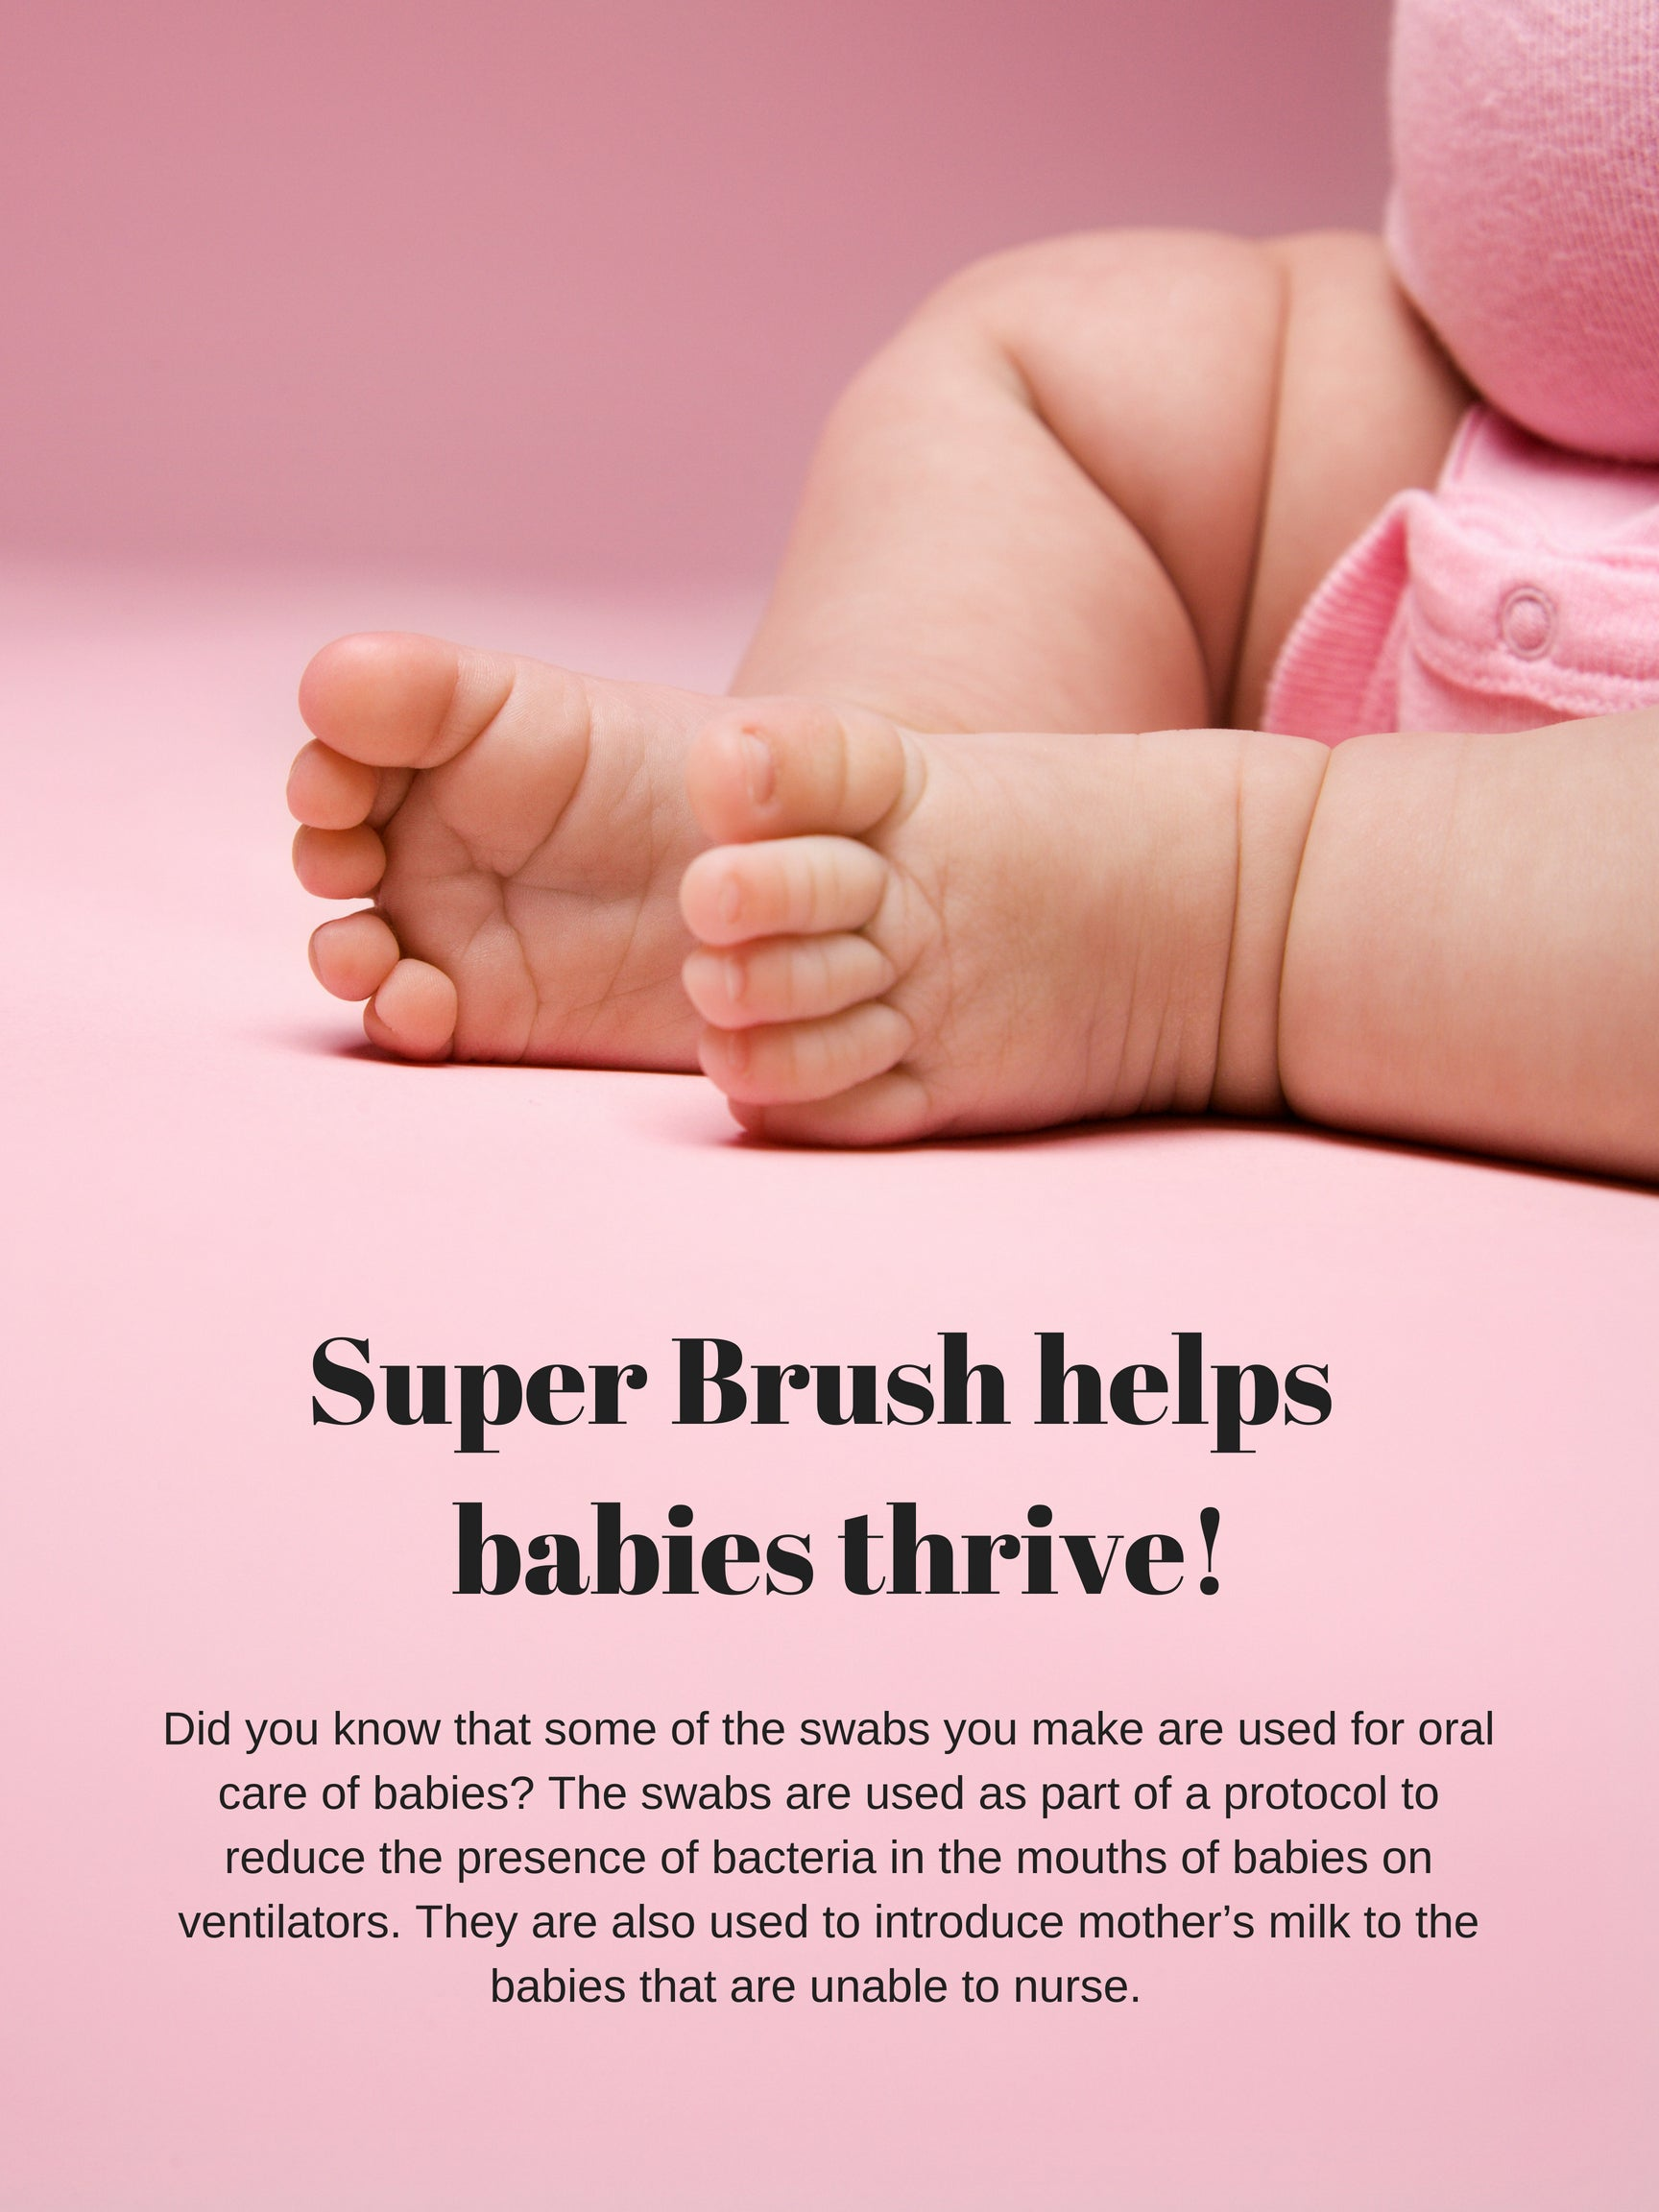 Super Brush Helps Babies Thrive!